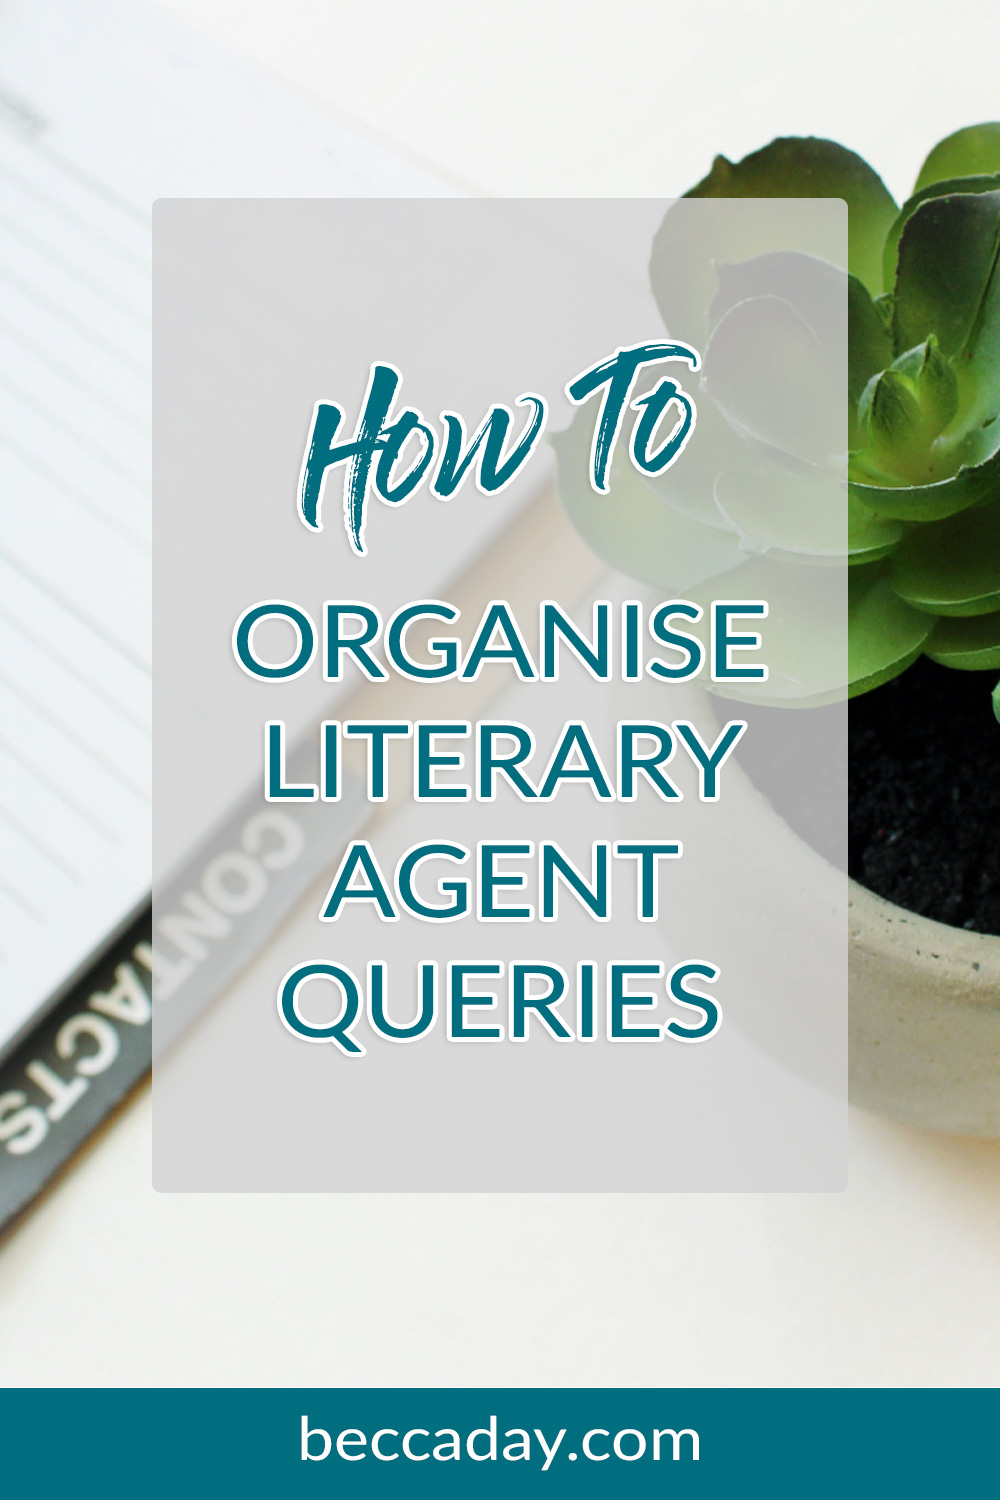 Blue text that reads 'how to organise literary agent queries' on a grey transparent background atop a picture of a planner and a succulant